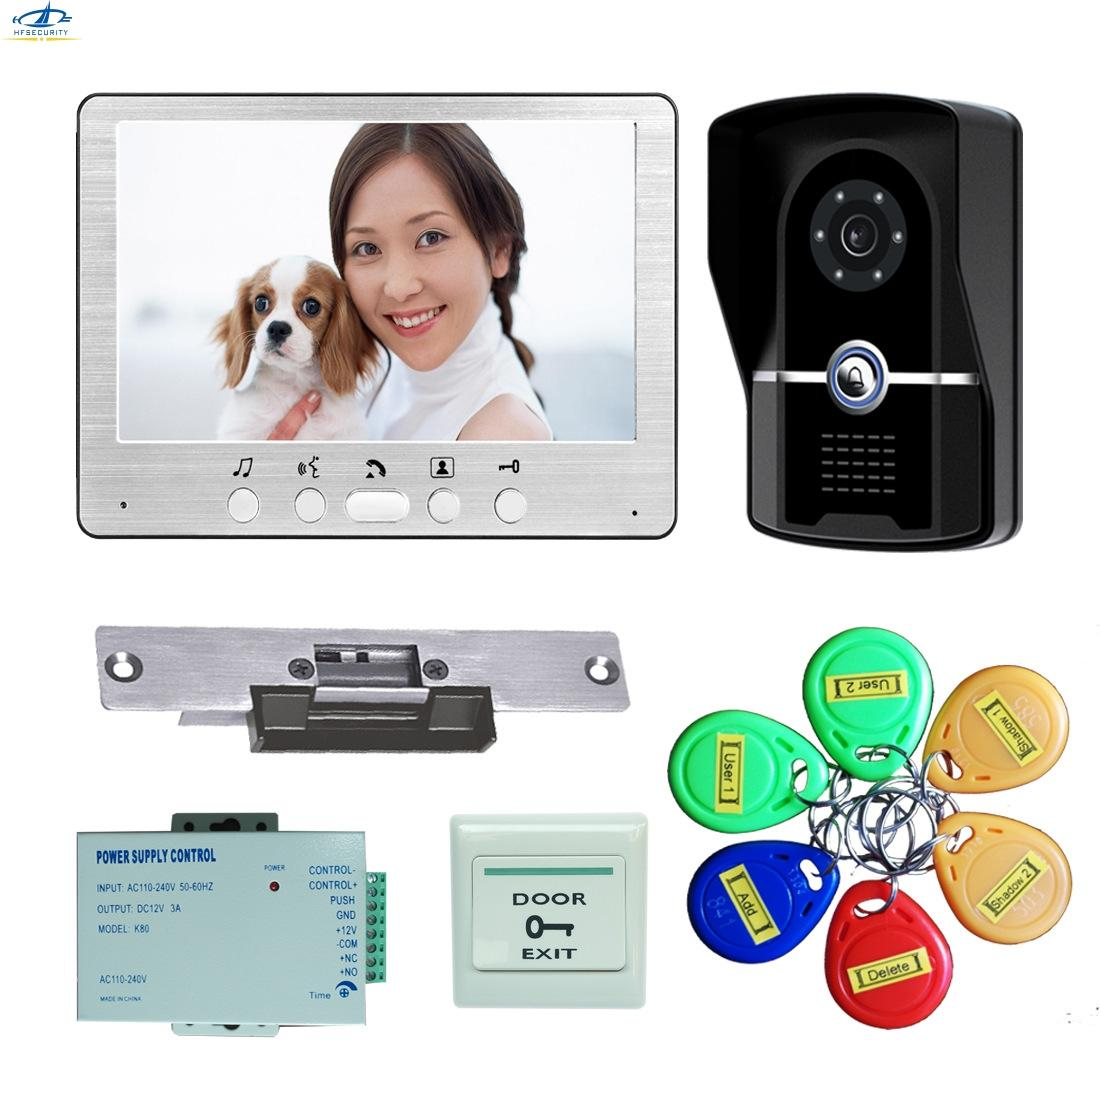 7 Inch Wireless Video Door Bell Video Intercom Electric Lock RFID Access Doorbell Home Security Waterproof Intercom System